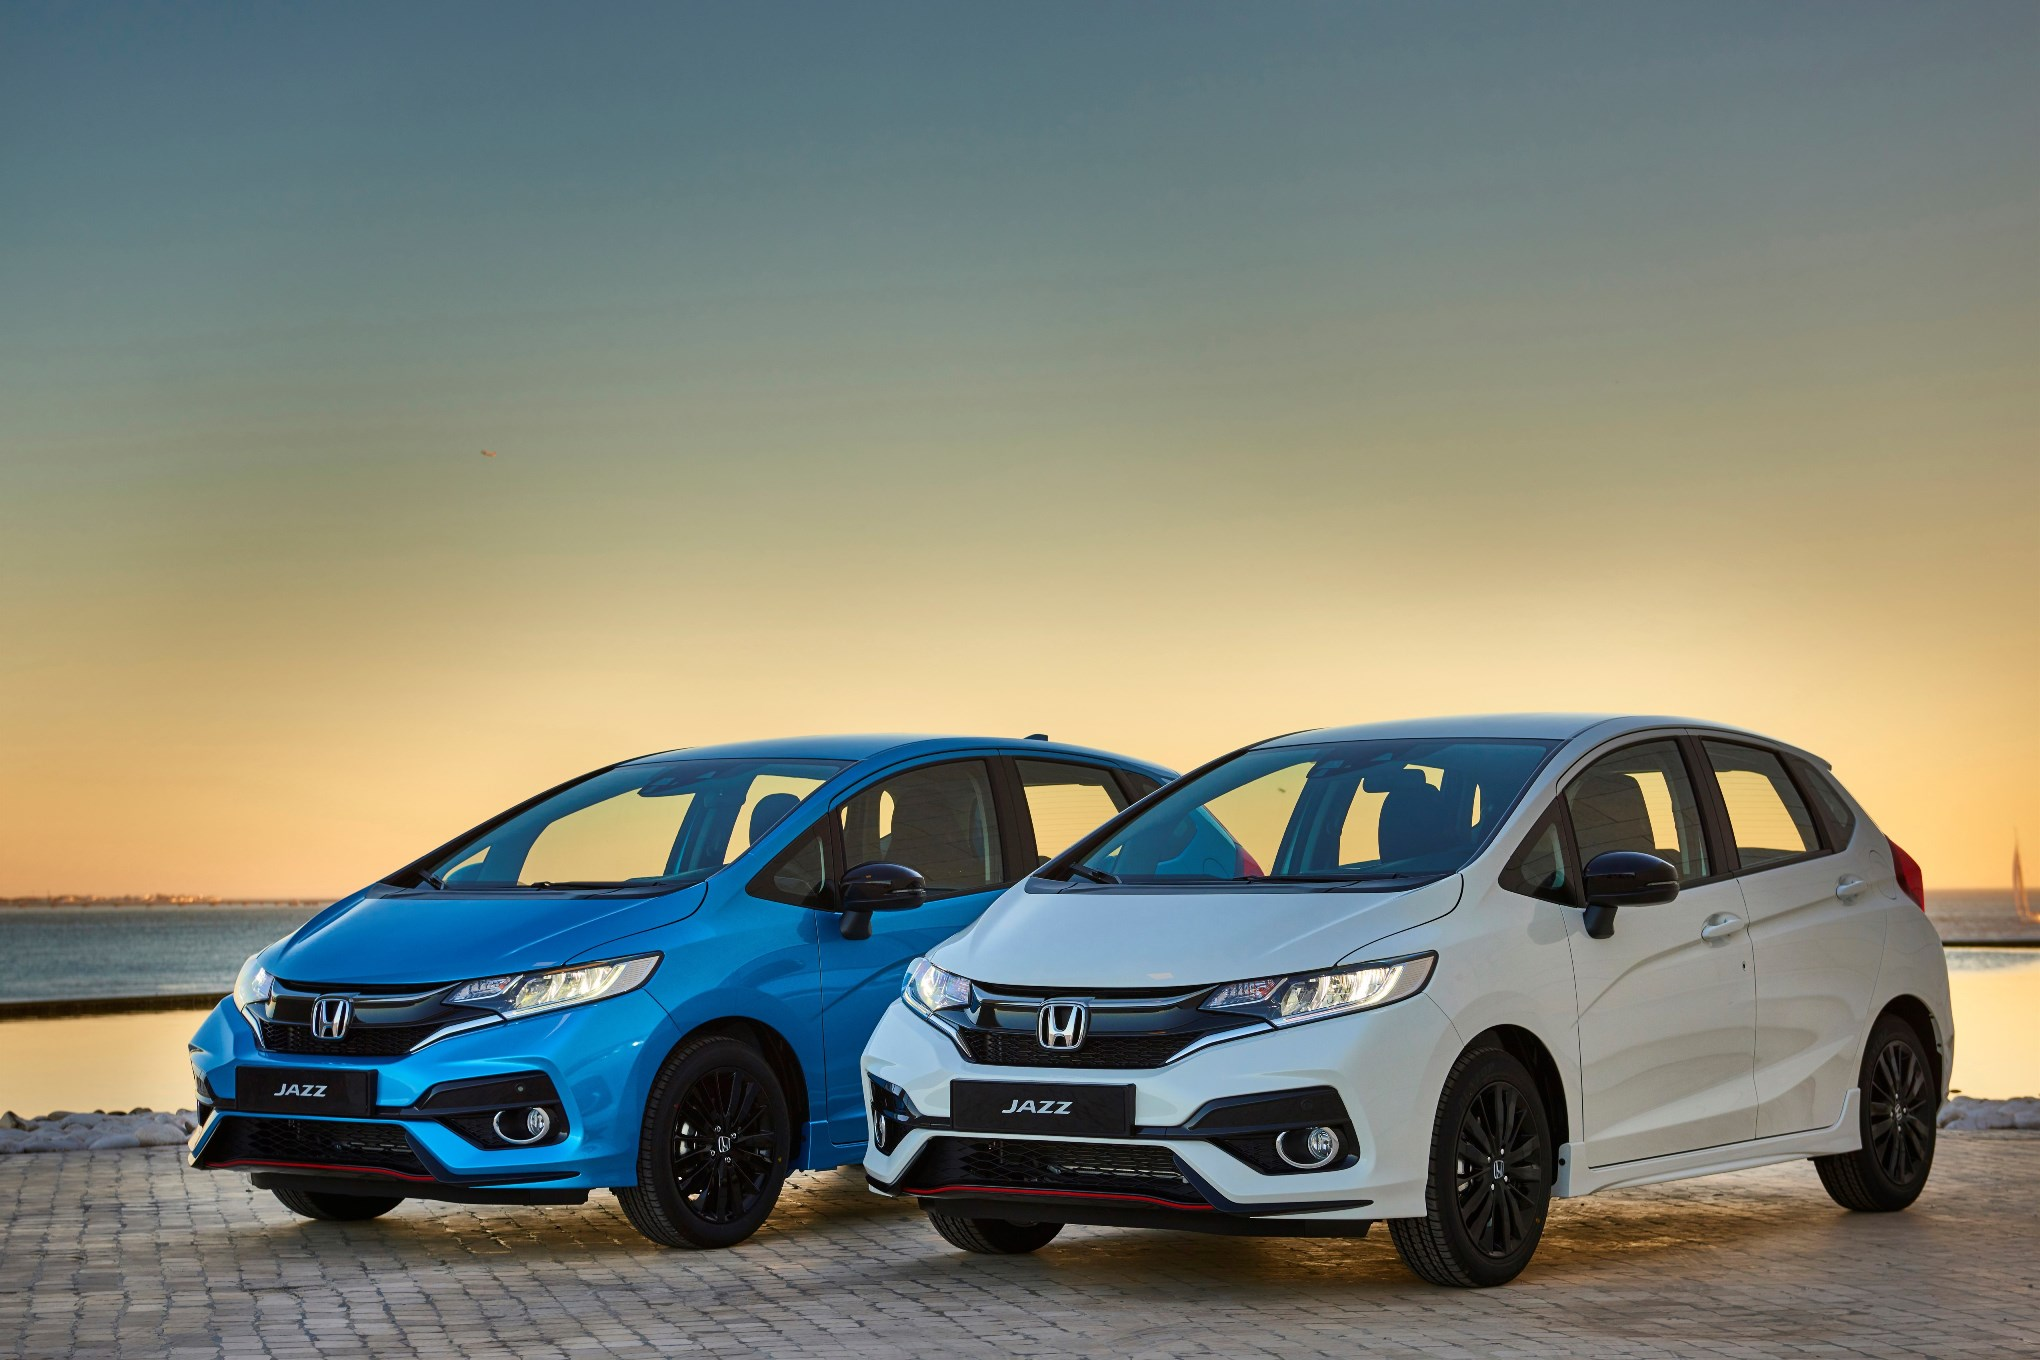 HONDA Jazz / Fit 2017 - Present